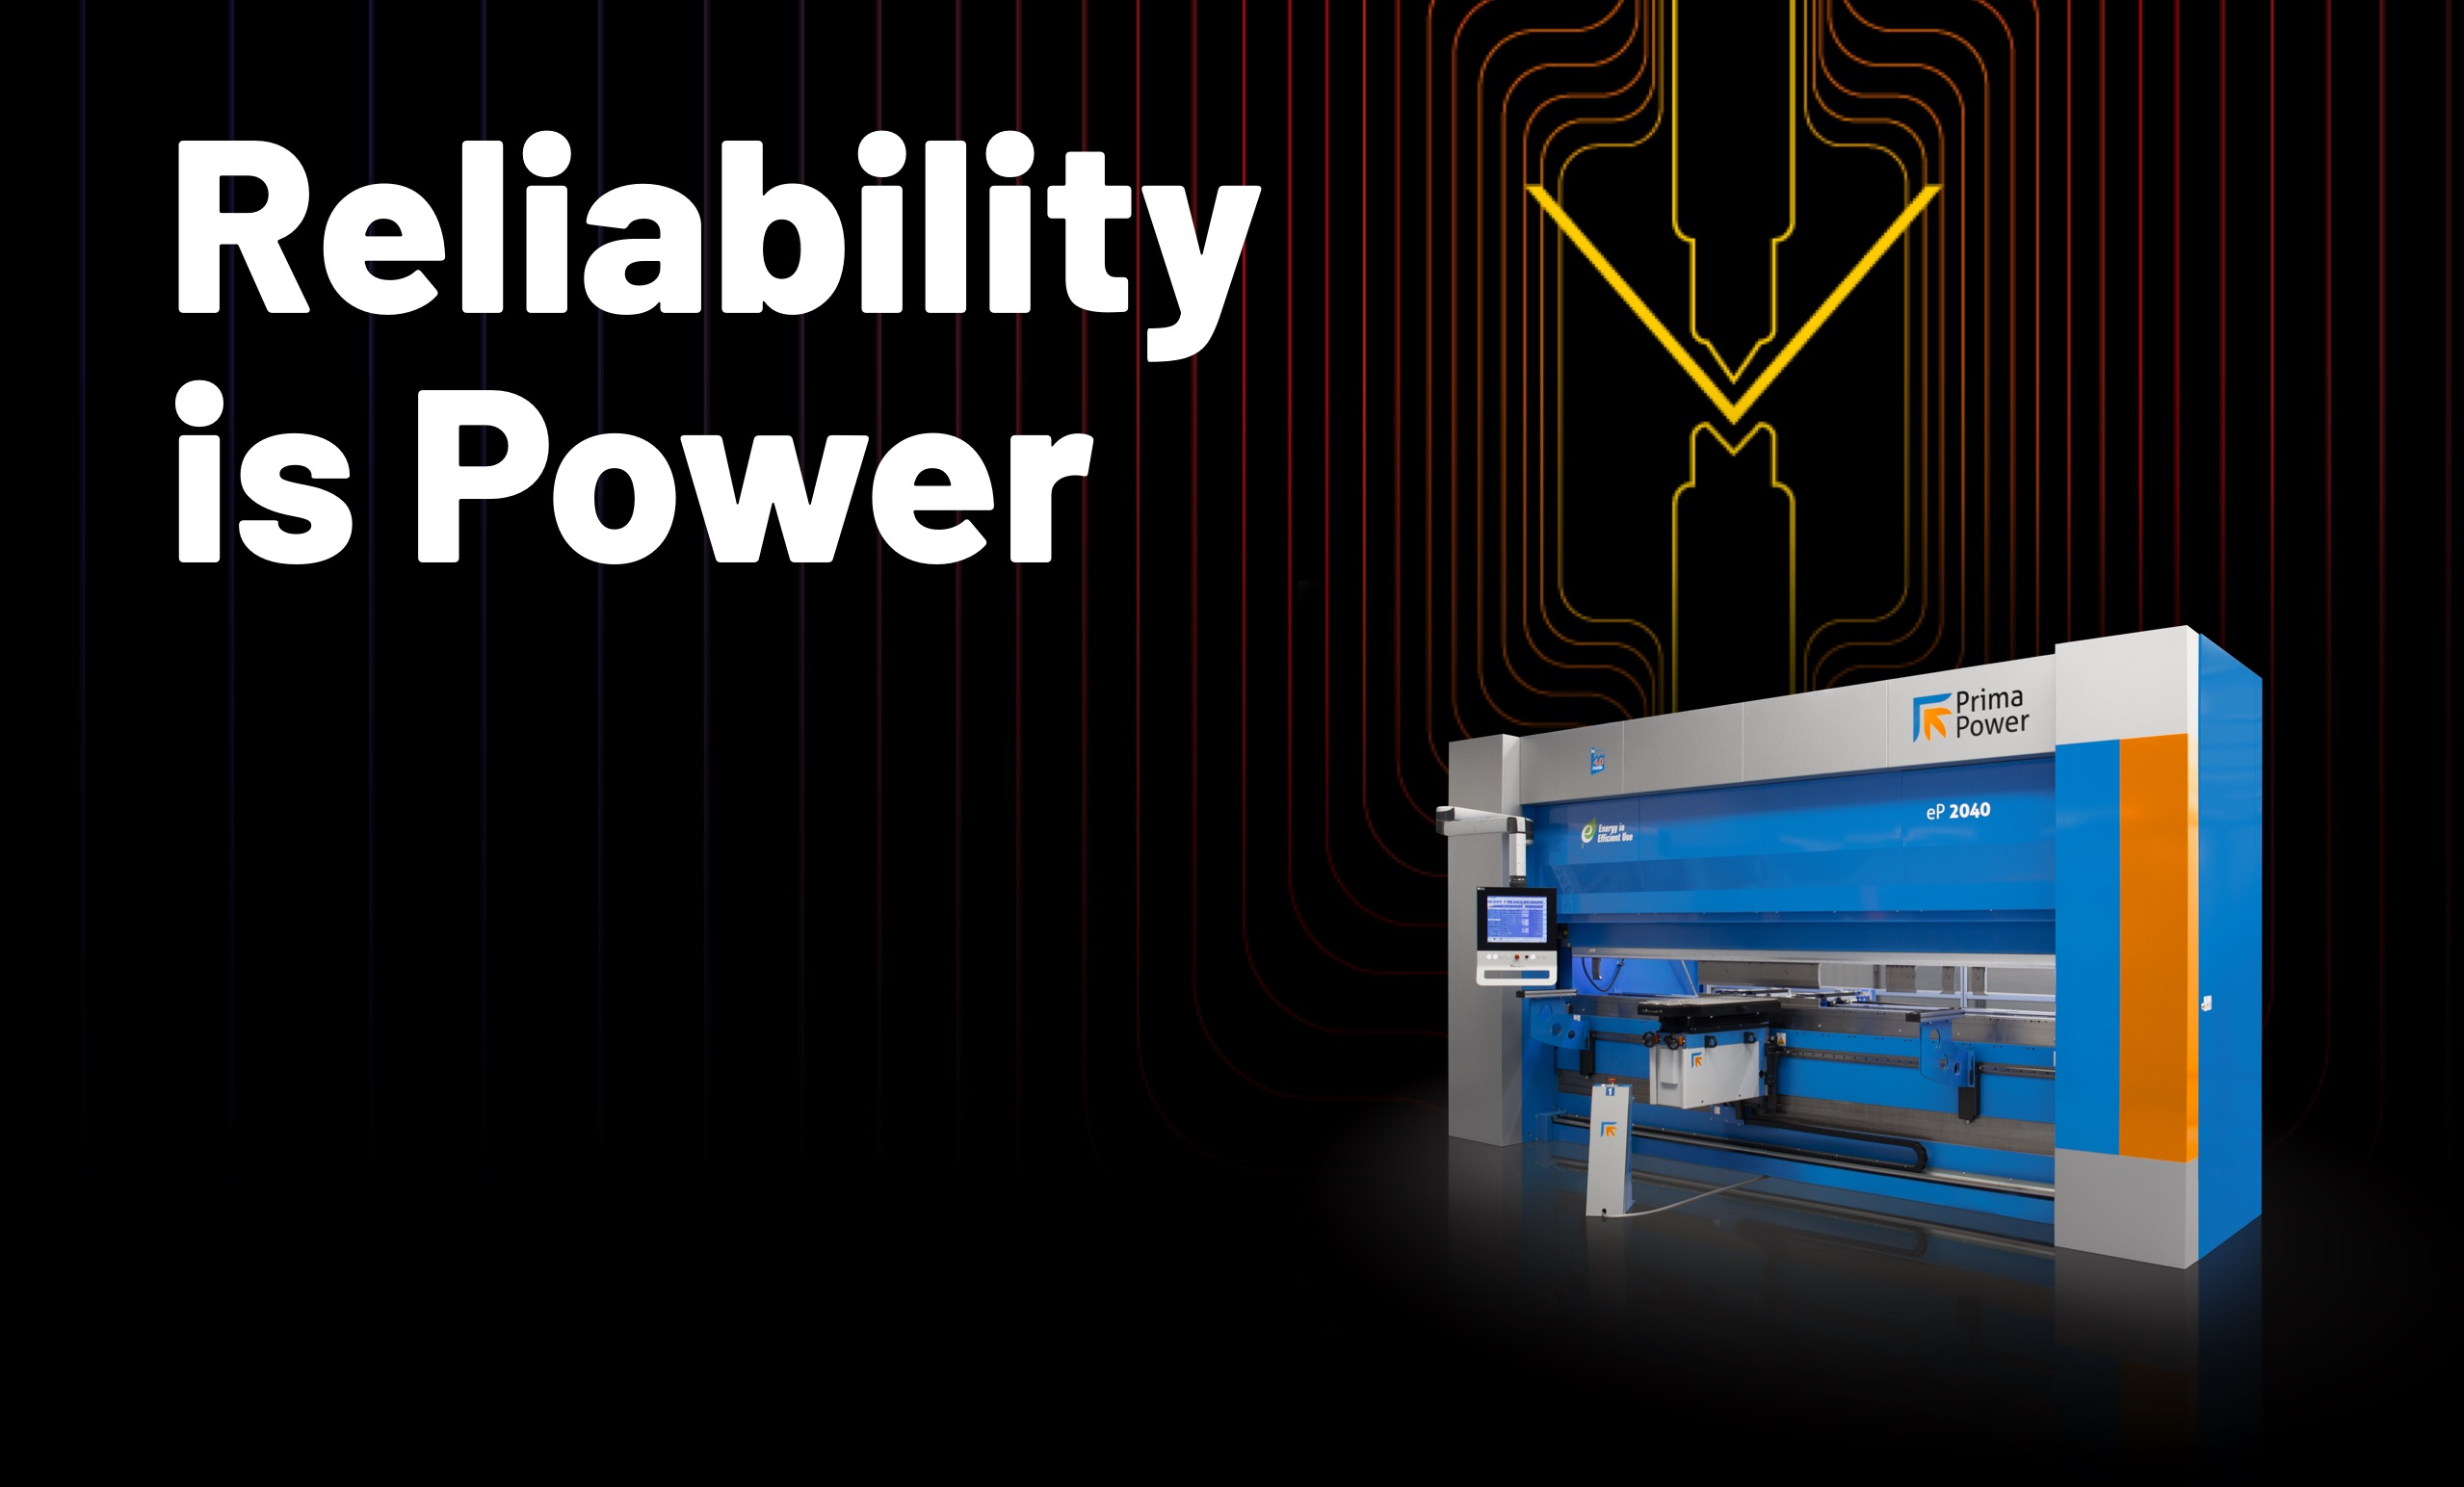 Reliability is power